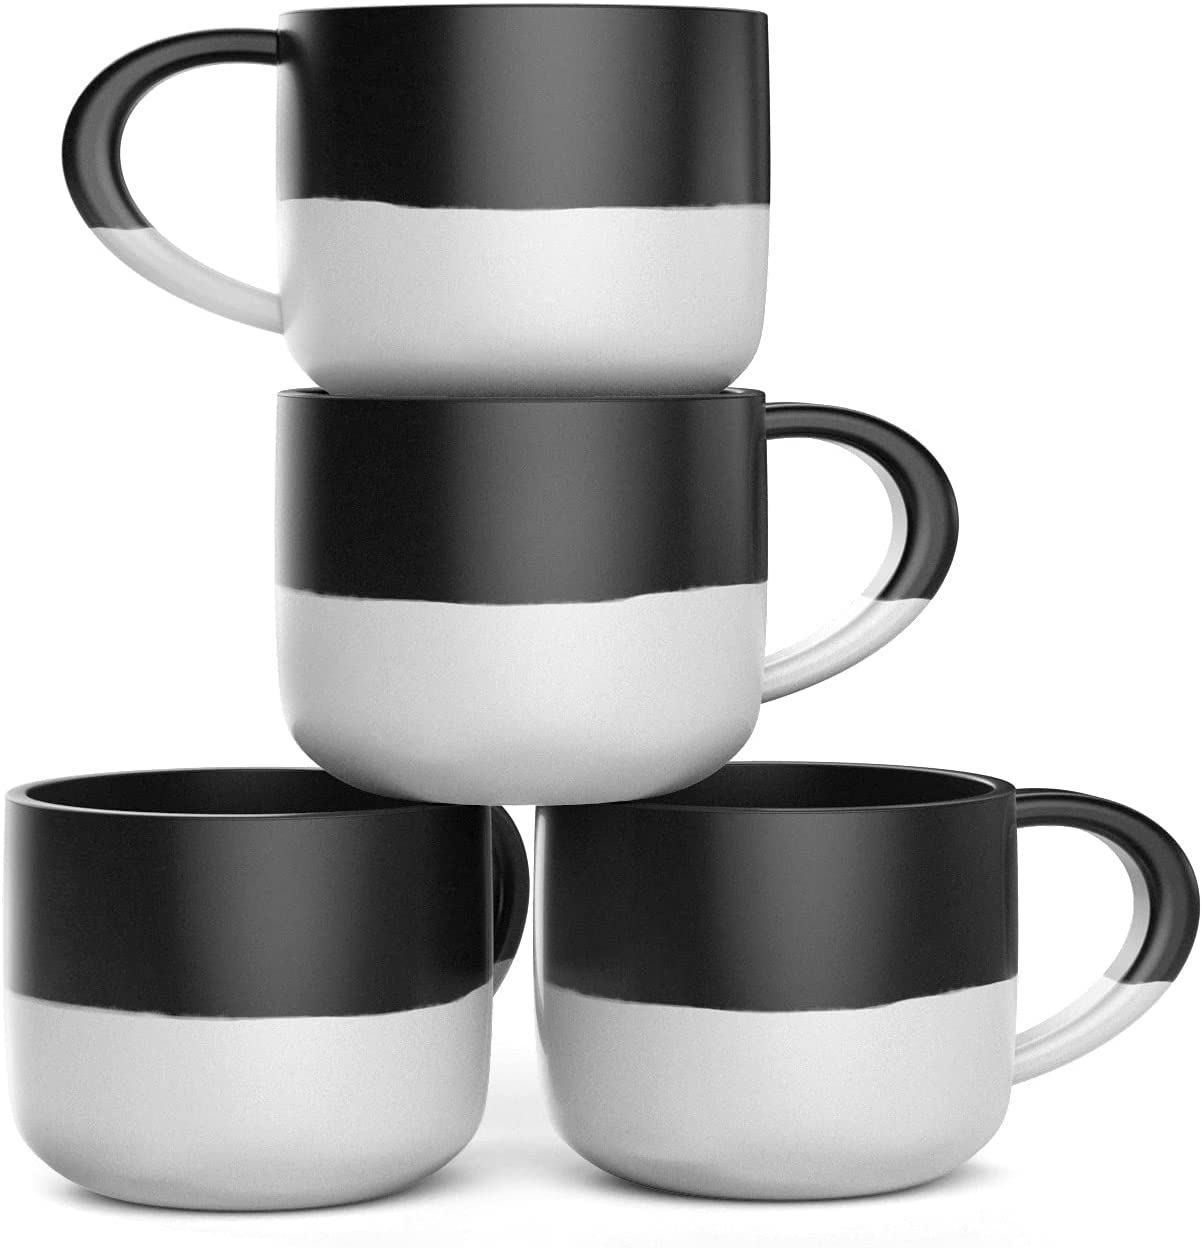 At the Luxury goods price Set of 4 Jumbo 18oz Wide-mouth Soup Mugs Ceramic Cereal Coffee